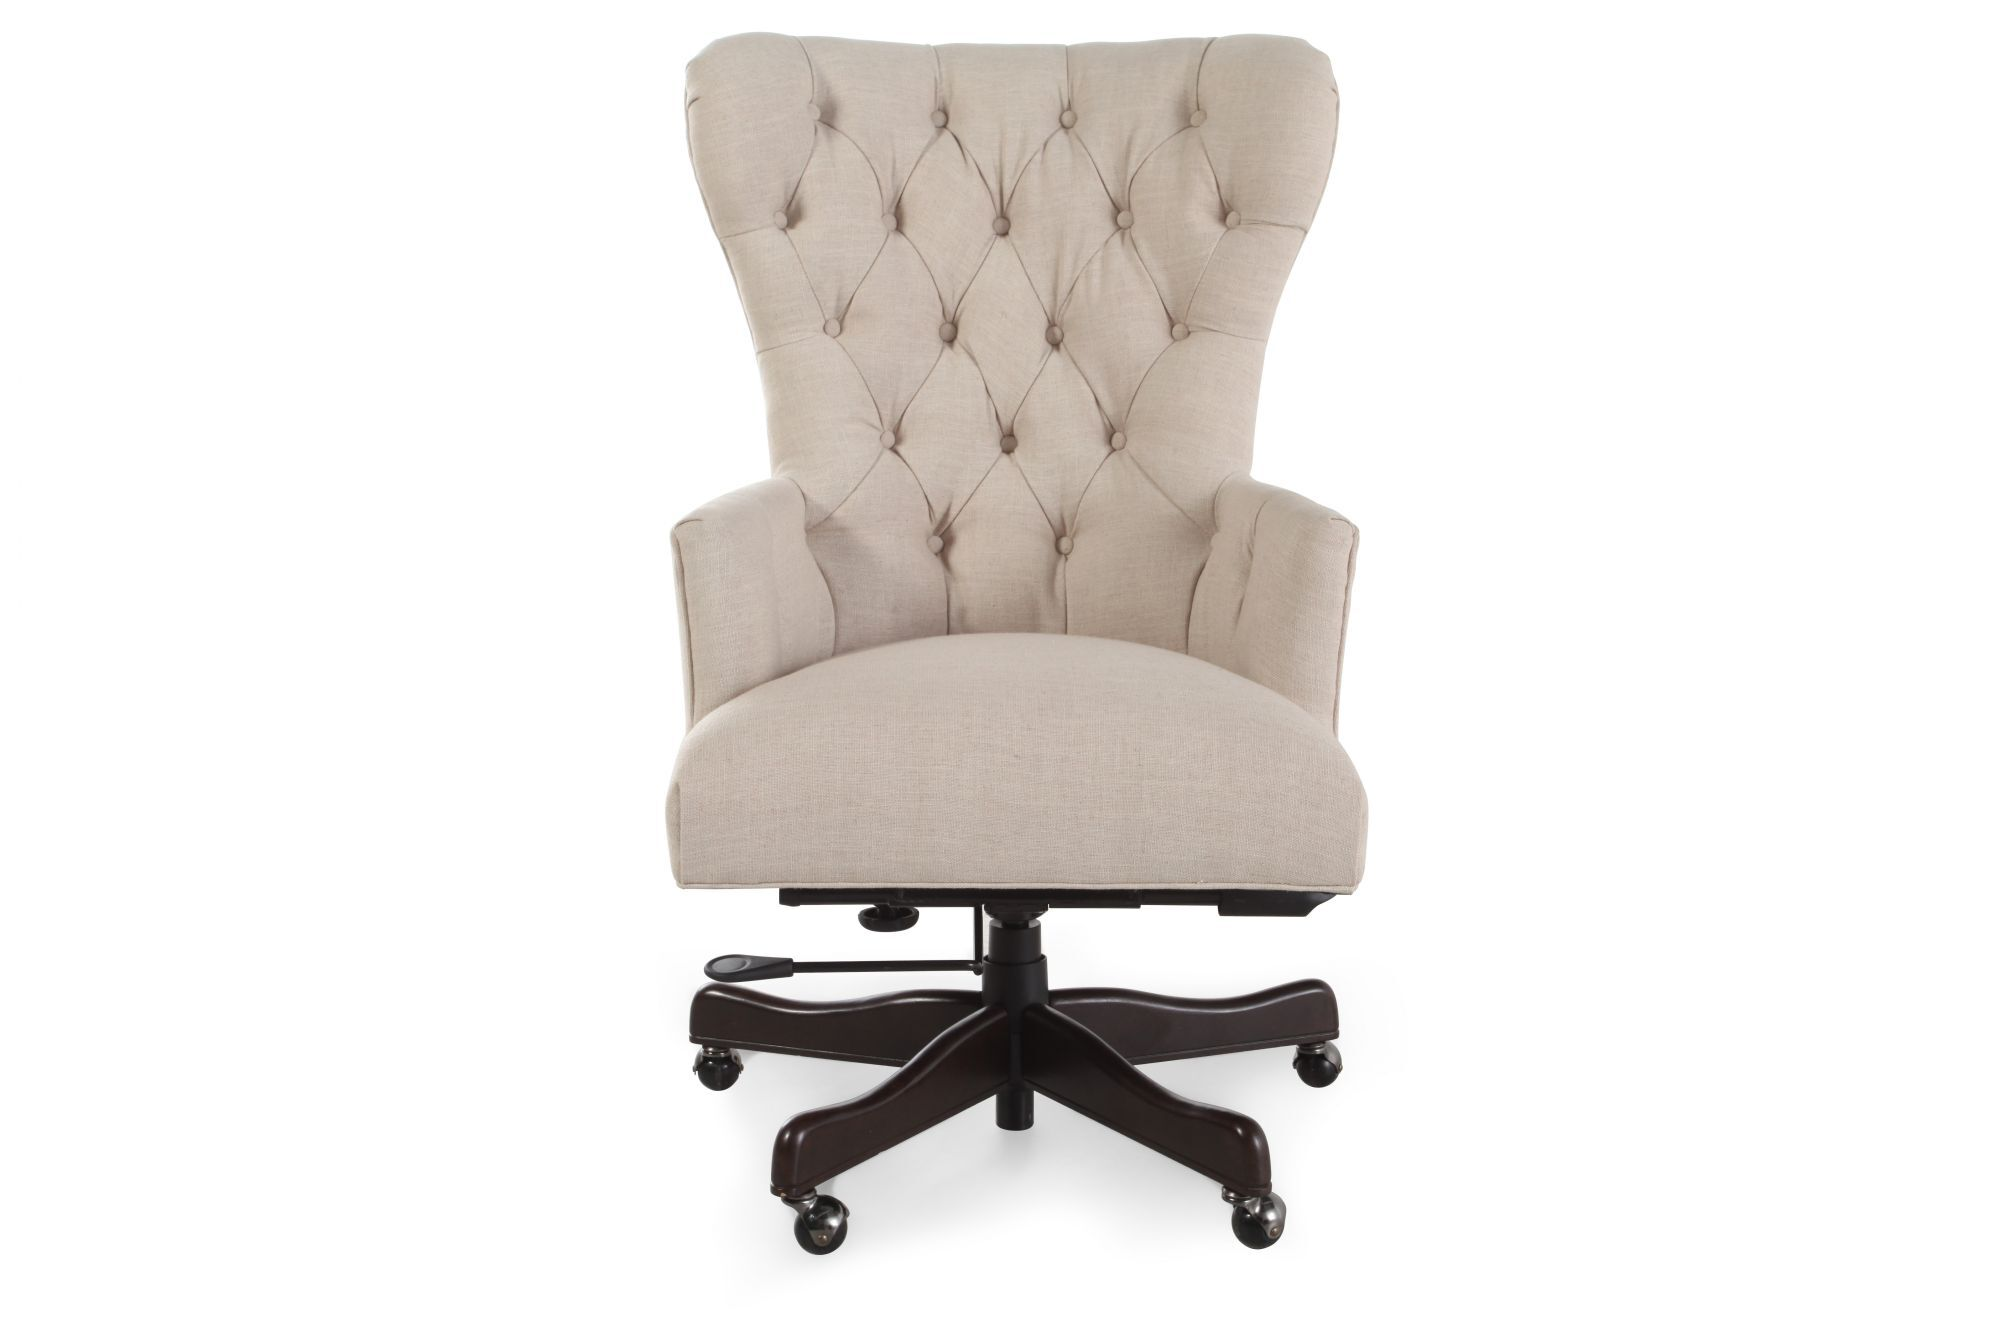 hight resolution of button tufted swivel desk chair in natchez brown mathis brothers furniture